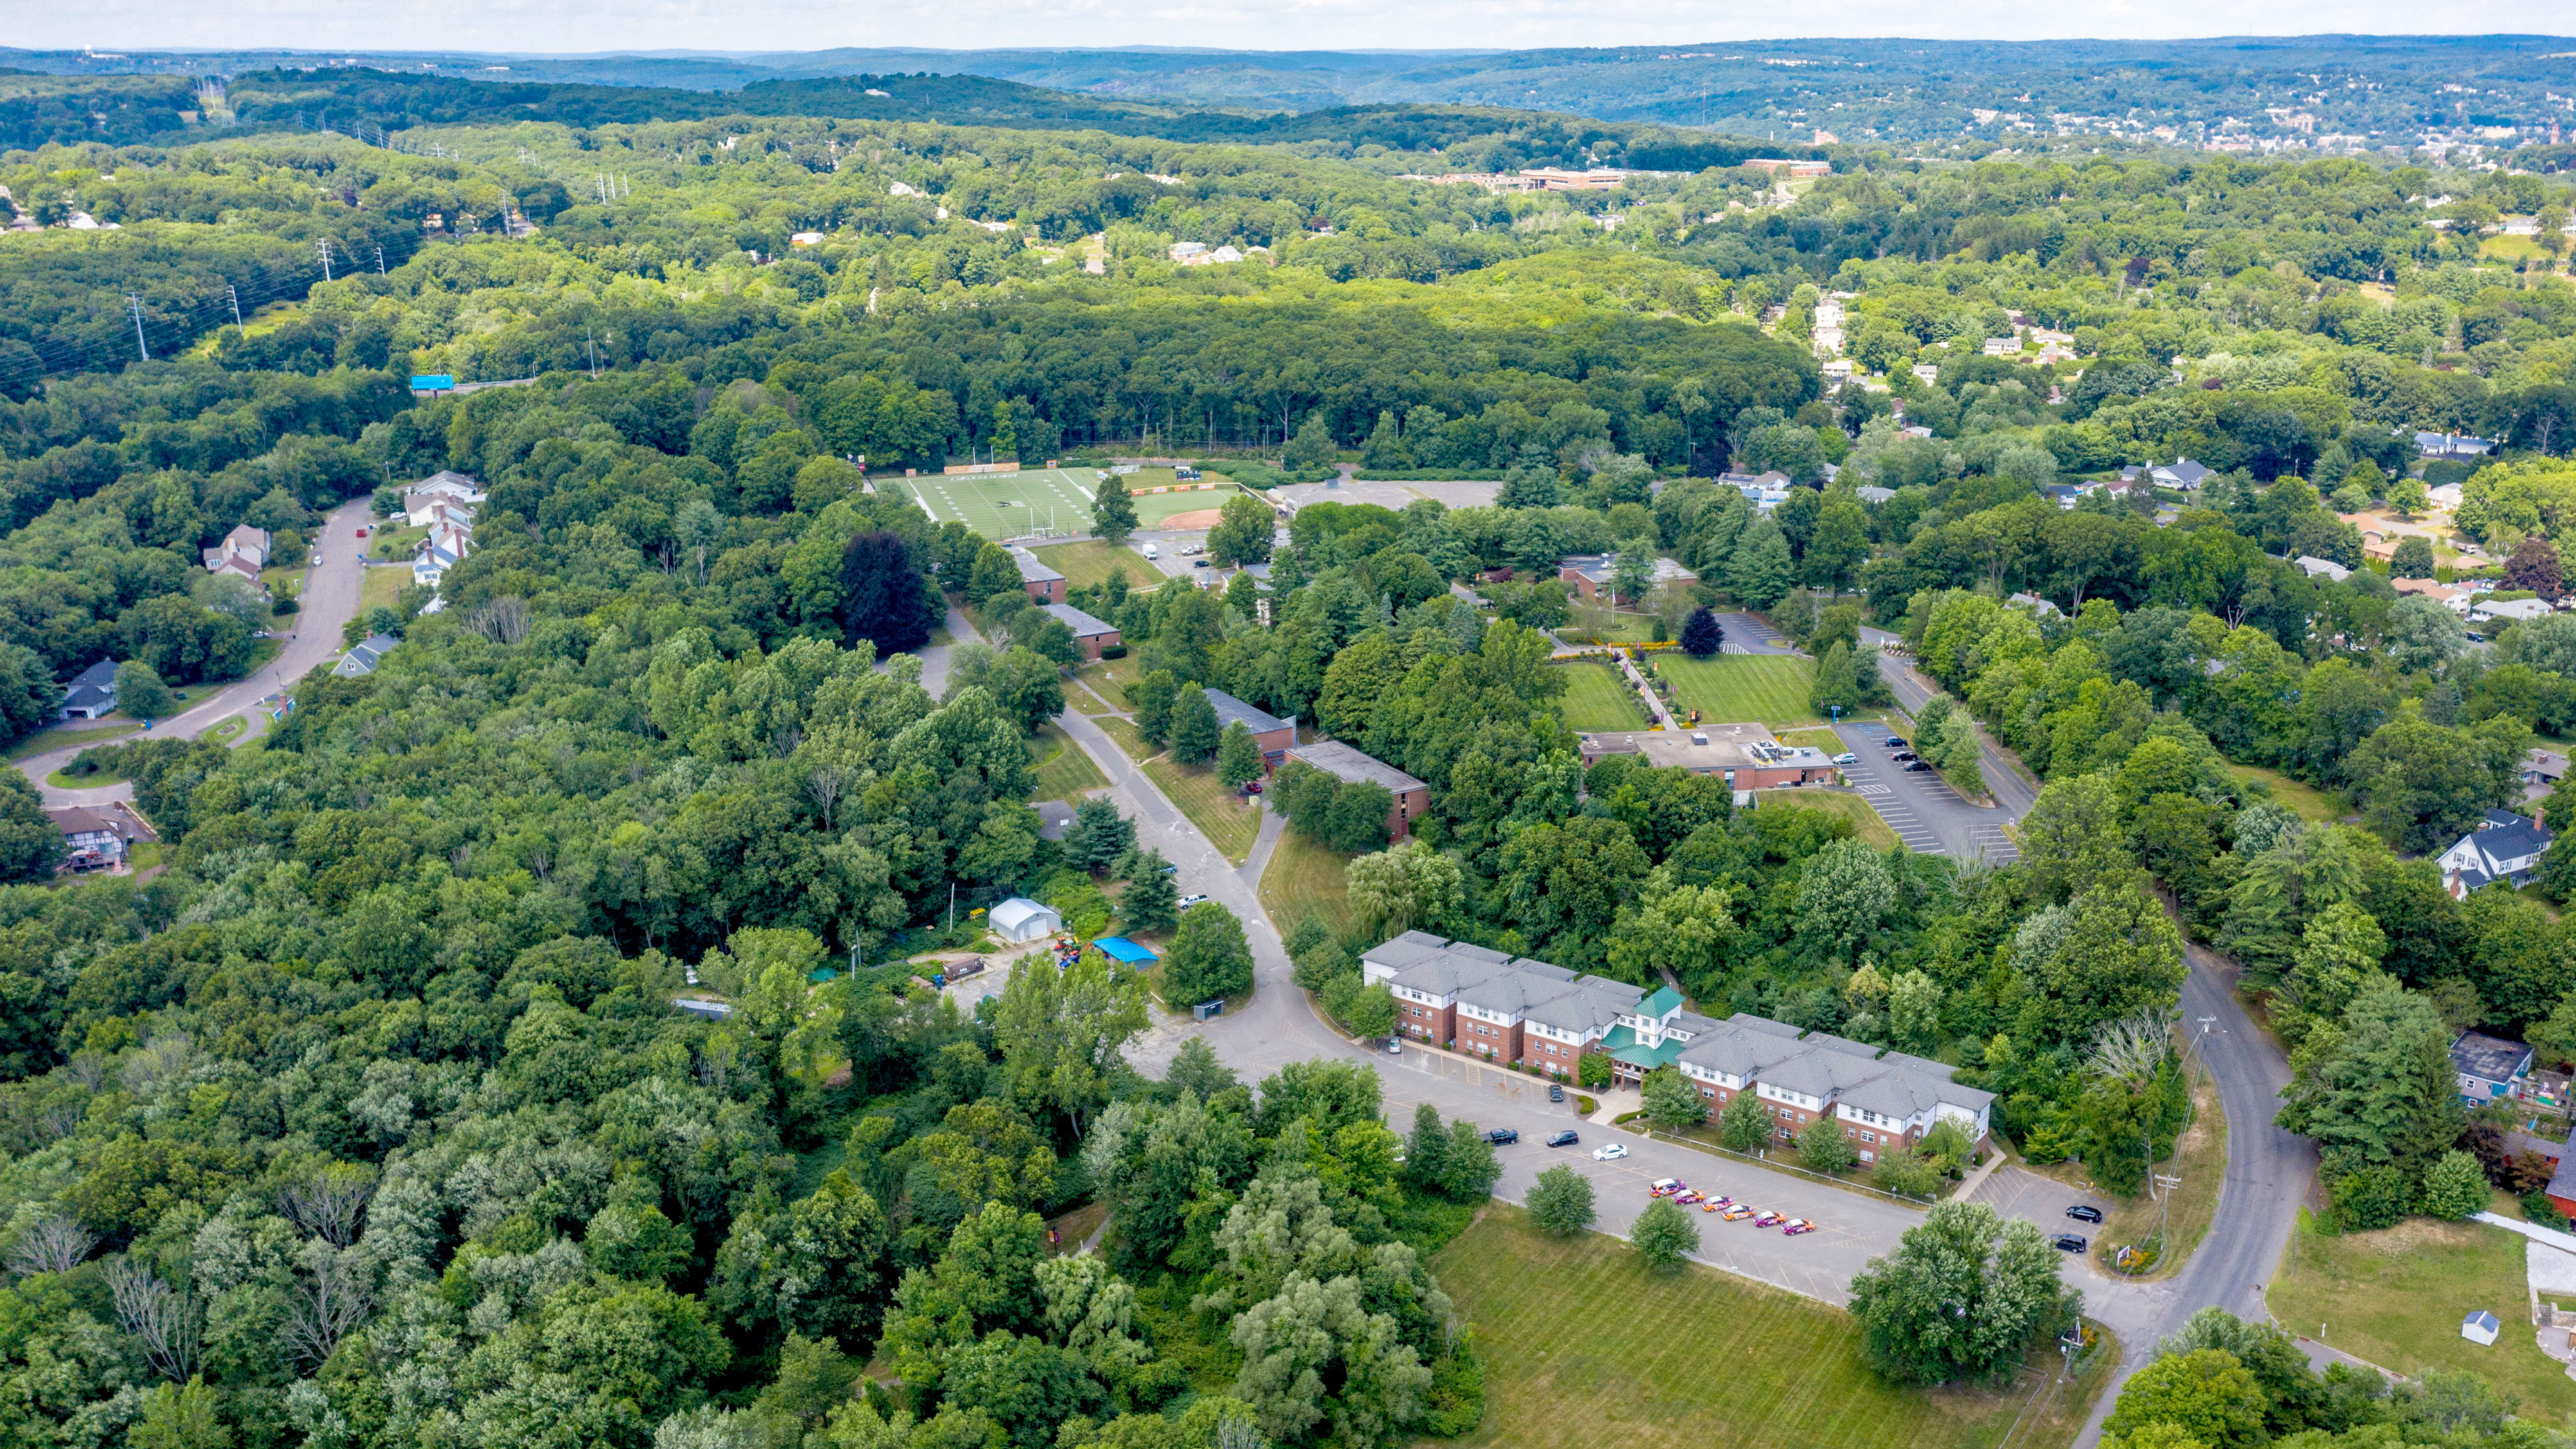 Overhead view of the Post University Campus in Waterbury CT